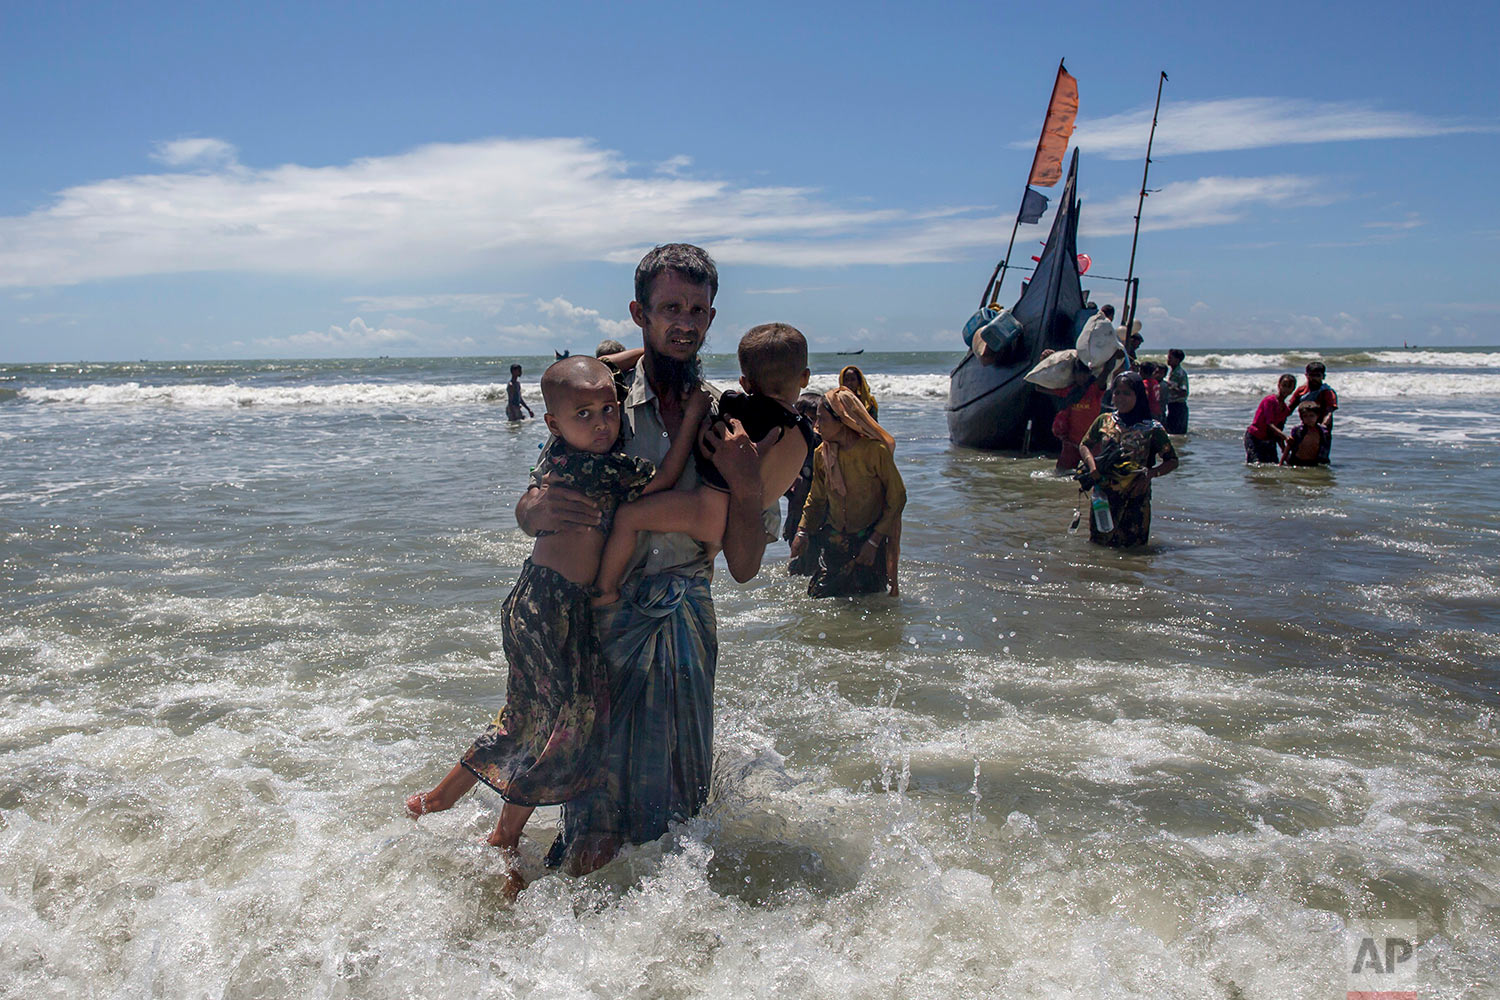 A Rohingya Muslim man walks to shore carrying two children after they arrived on a boat from Myanmar to Bangladesh in Shah Porir Dwip, Bangladesh, Thursday, Sept. 14, 2017. Those who arrived Wednesday in wooden boats described ongoing violence in Myanmar, where smoke could be seen billowing from a burning village, suggesting more Rohingya homes had been set alight. (AP Photo/Dar Yasin)